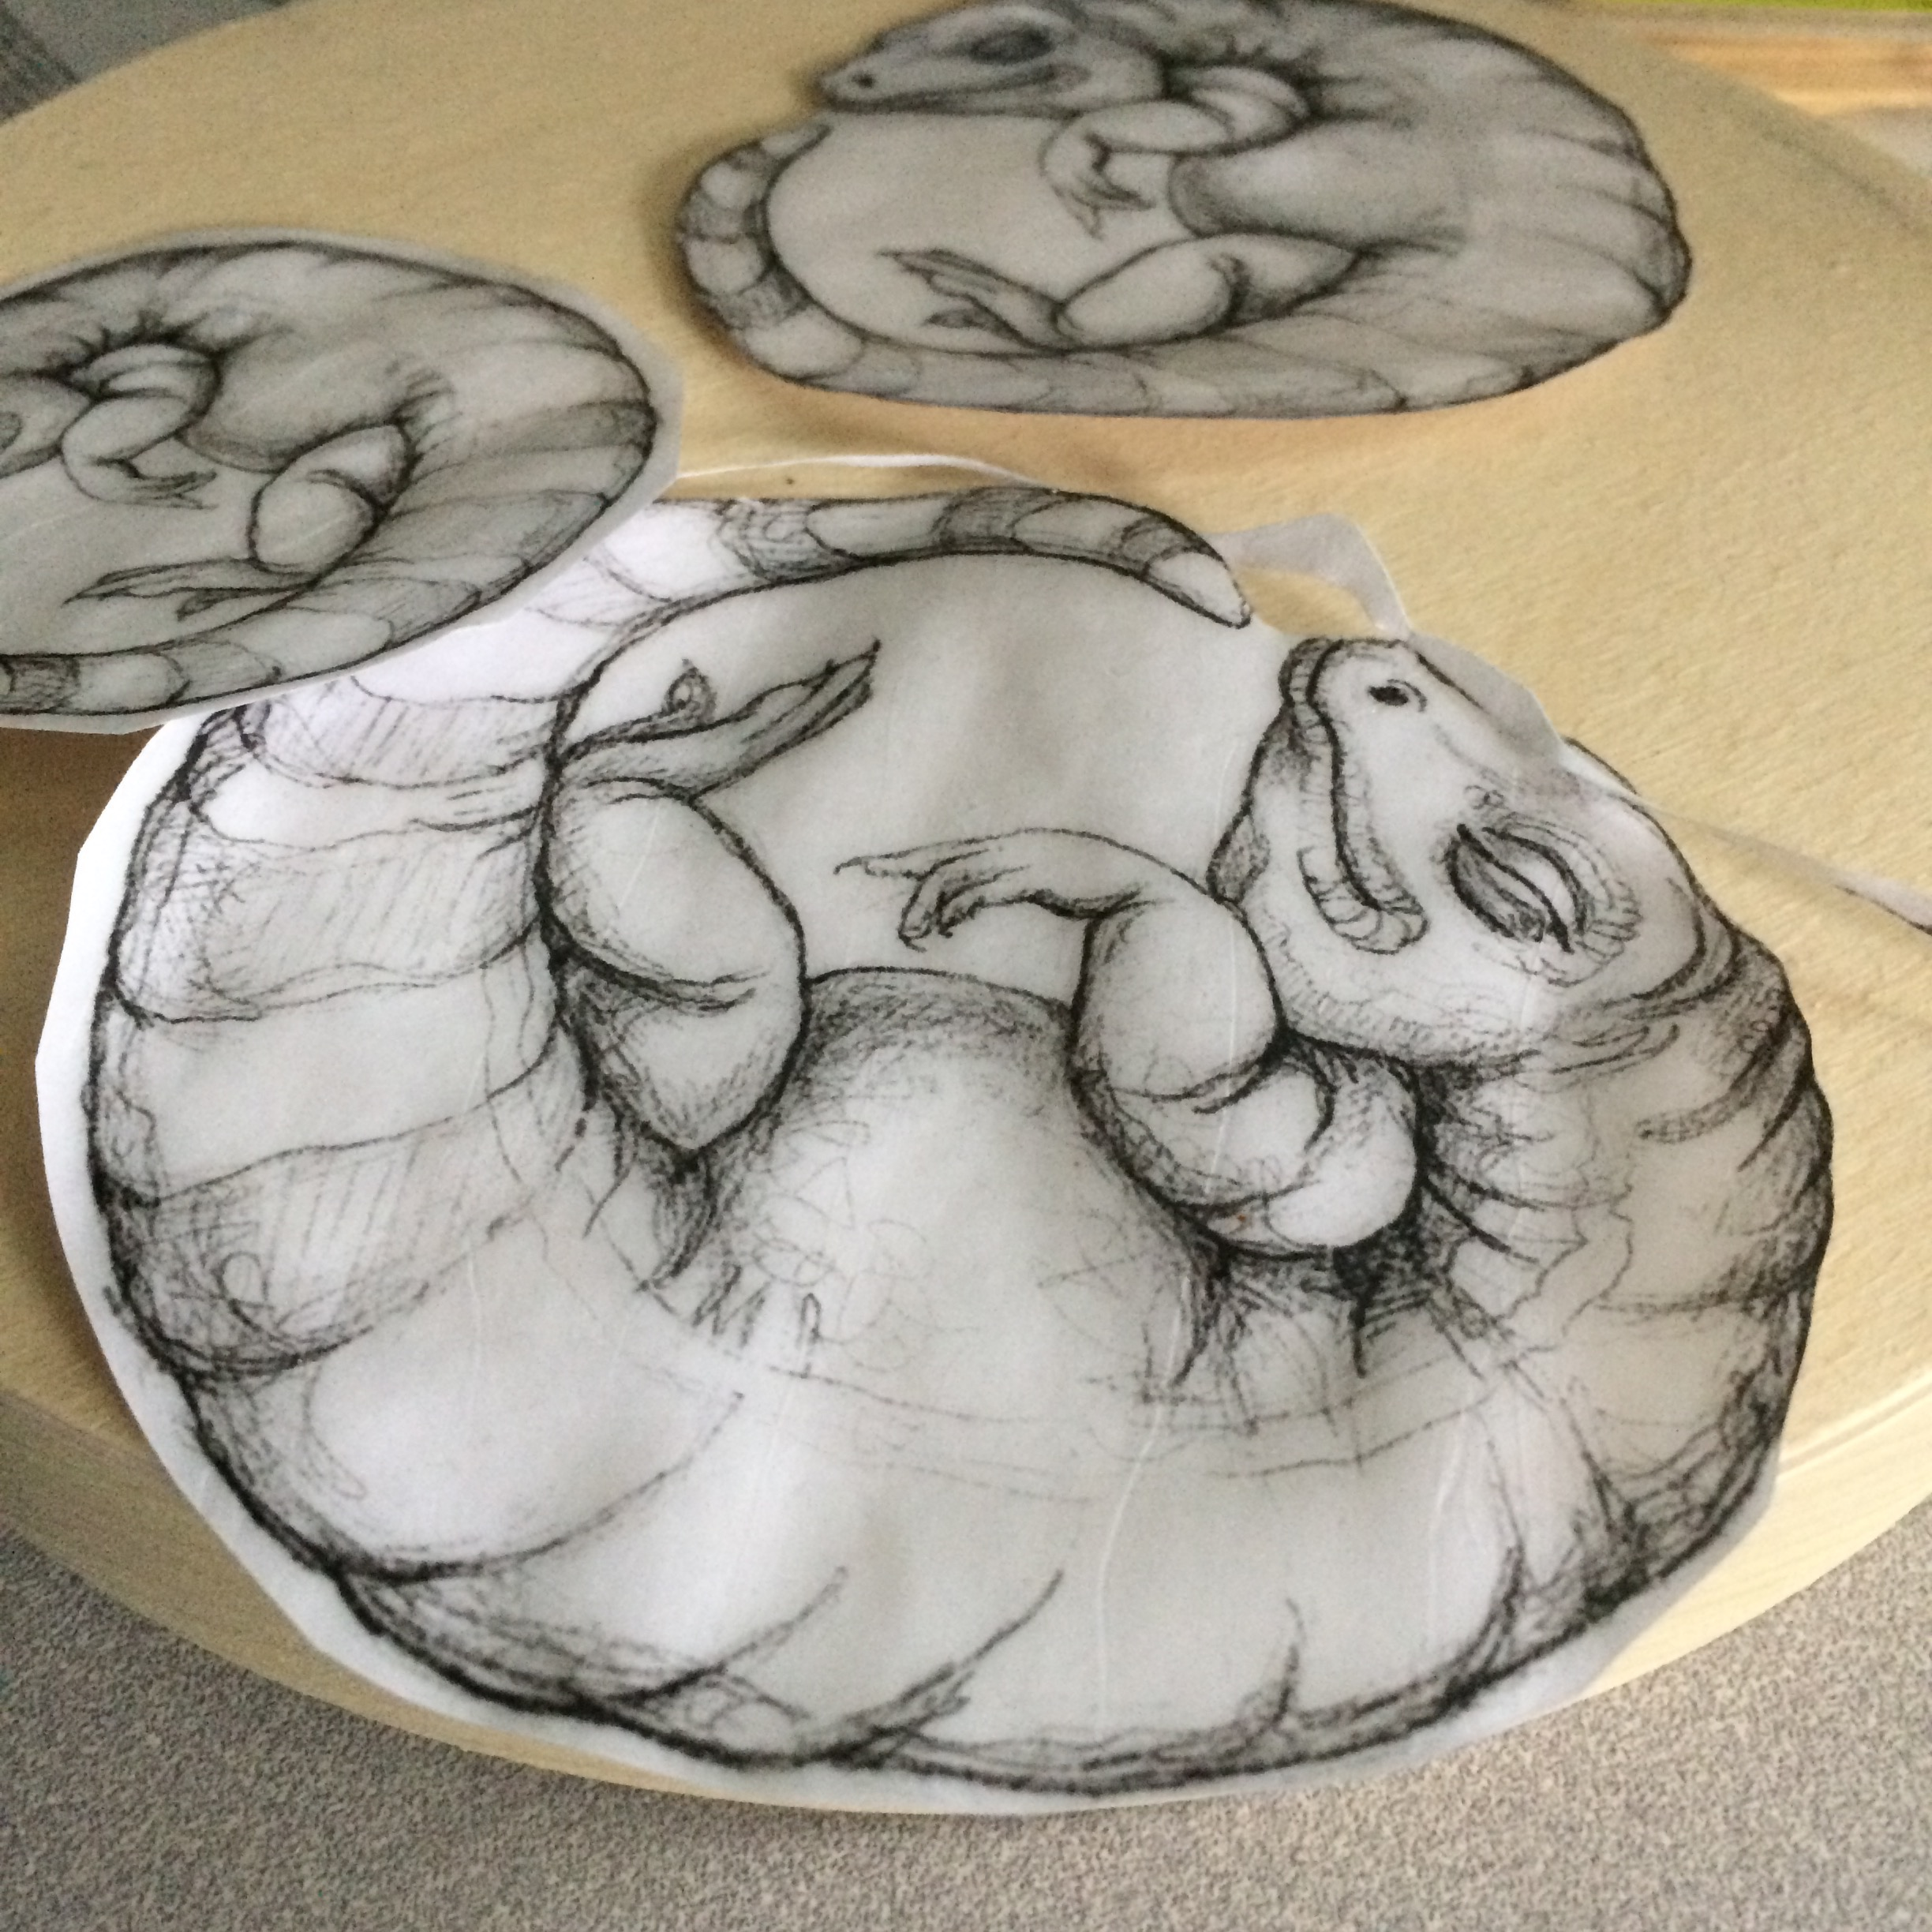 (A) Start with lizard gel transfer drawings.